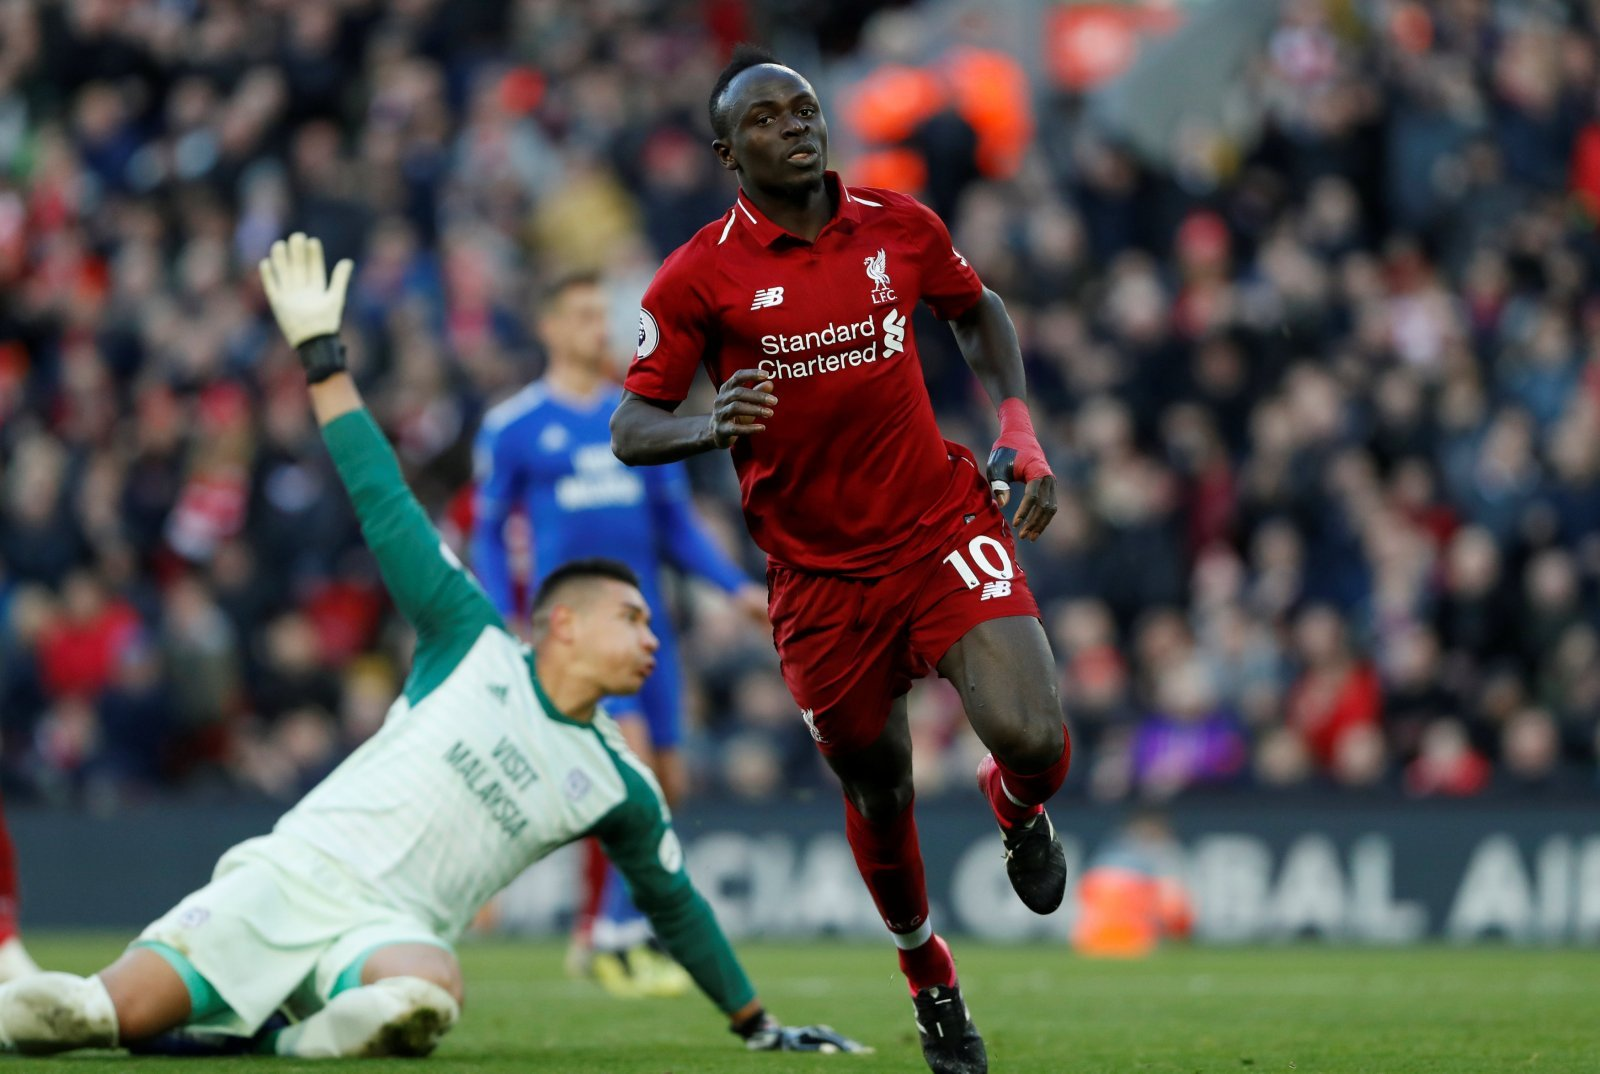 Pundit's Choice: Sadio Mane